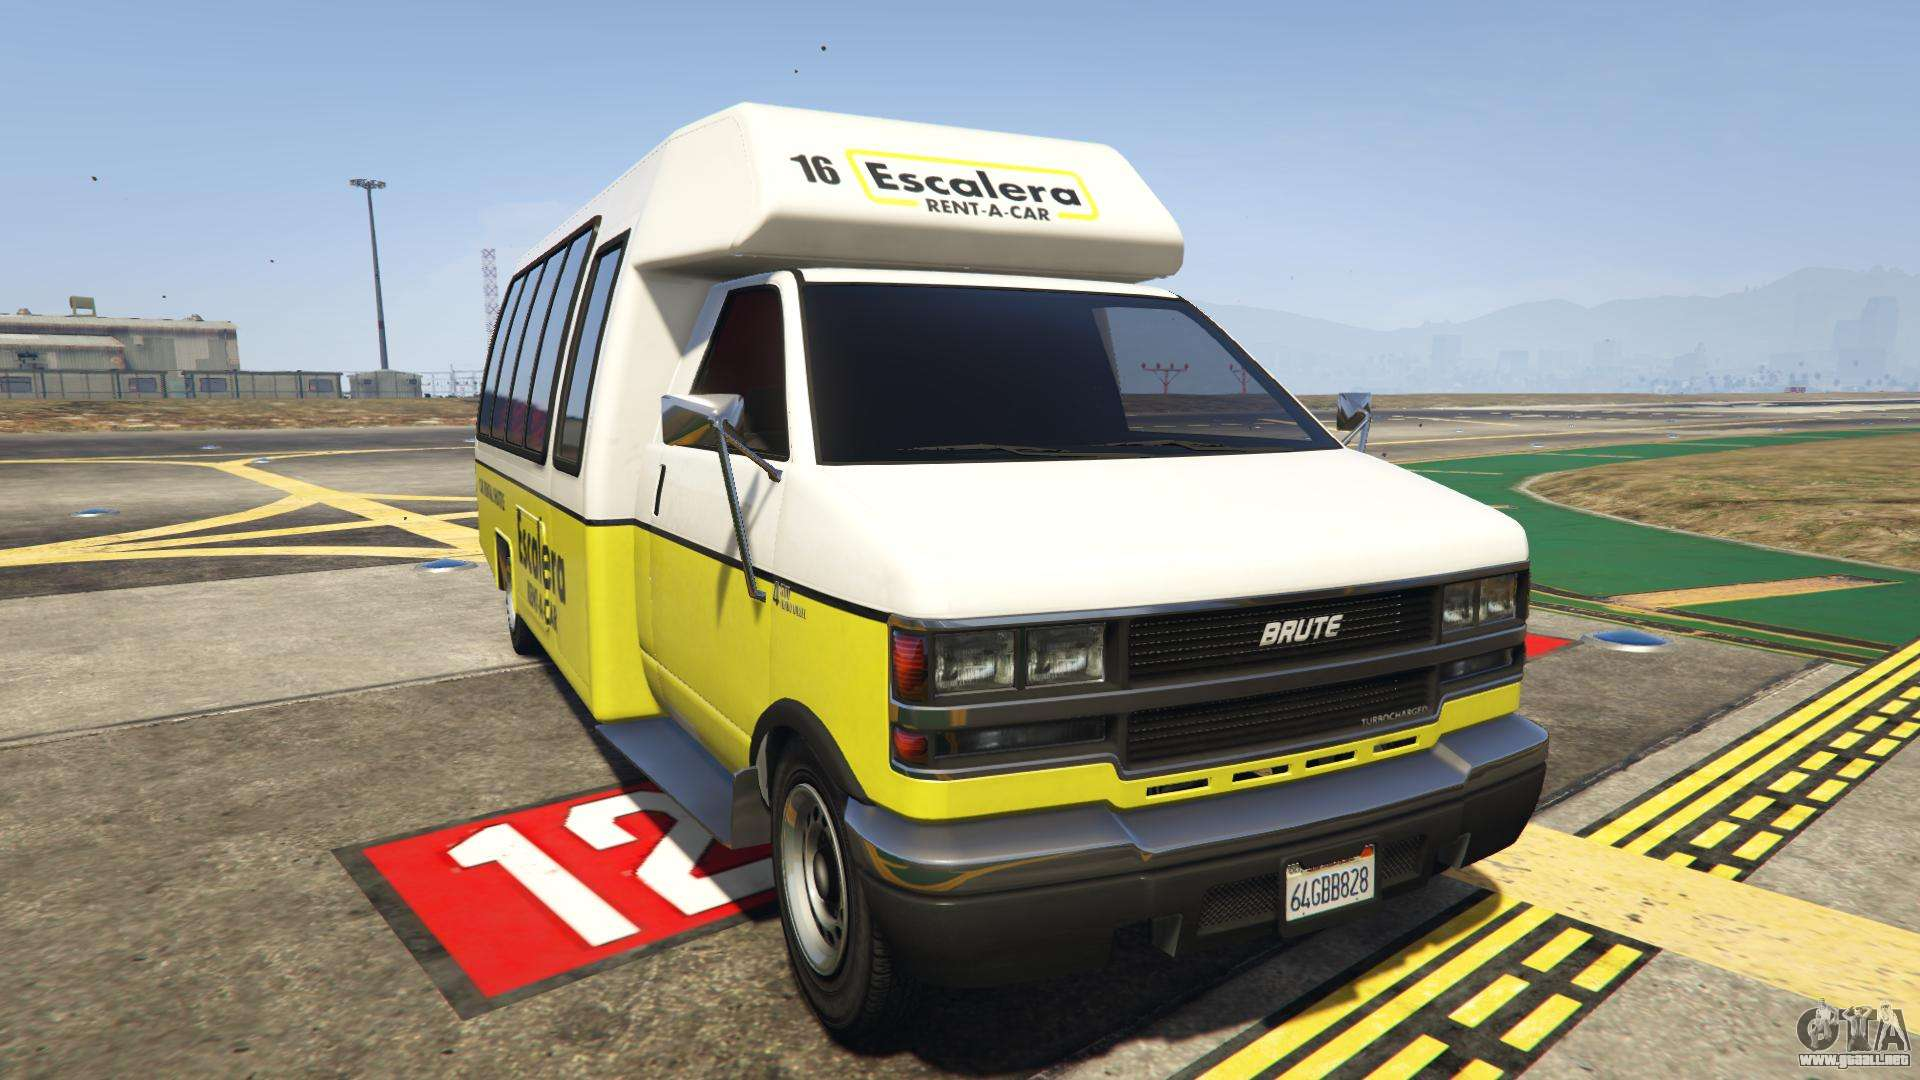 GTA 5 Brute Rental Shuttle Bus - vista frontal